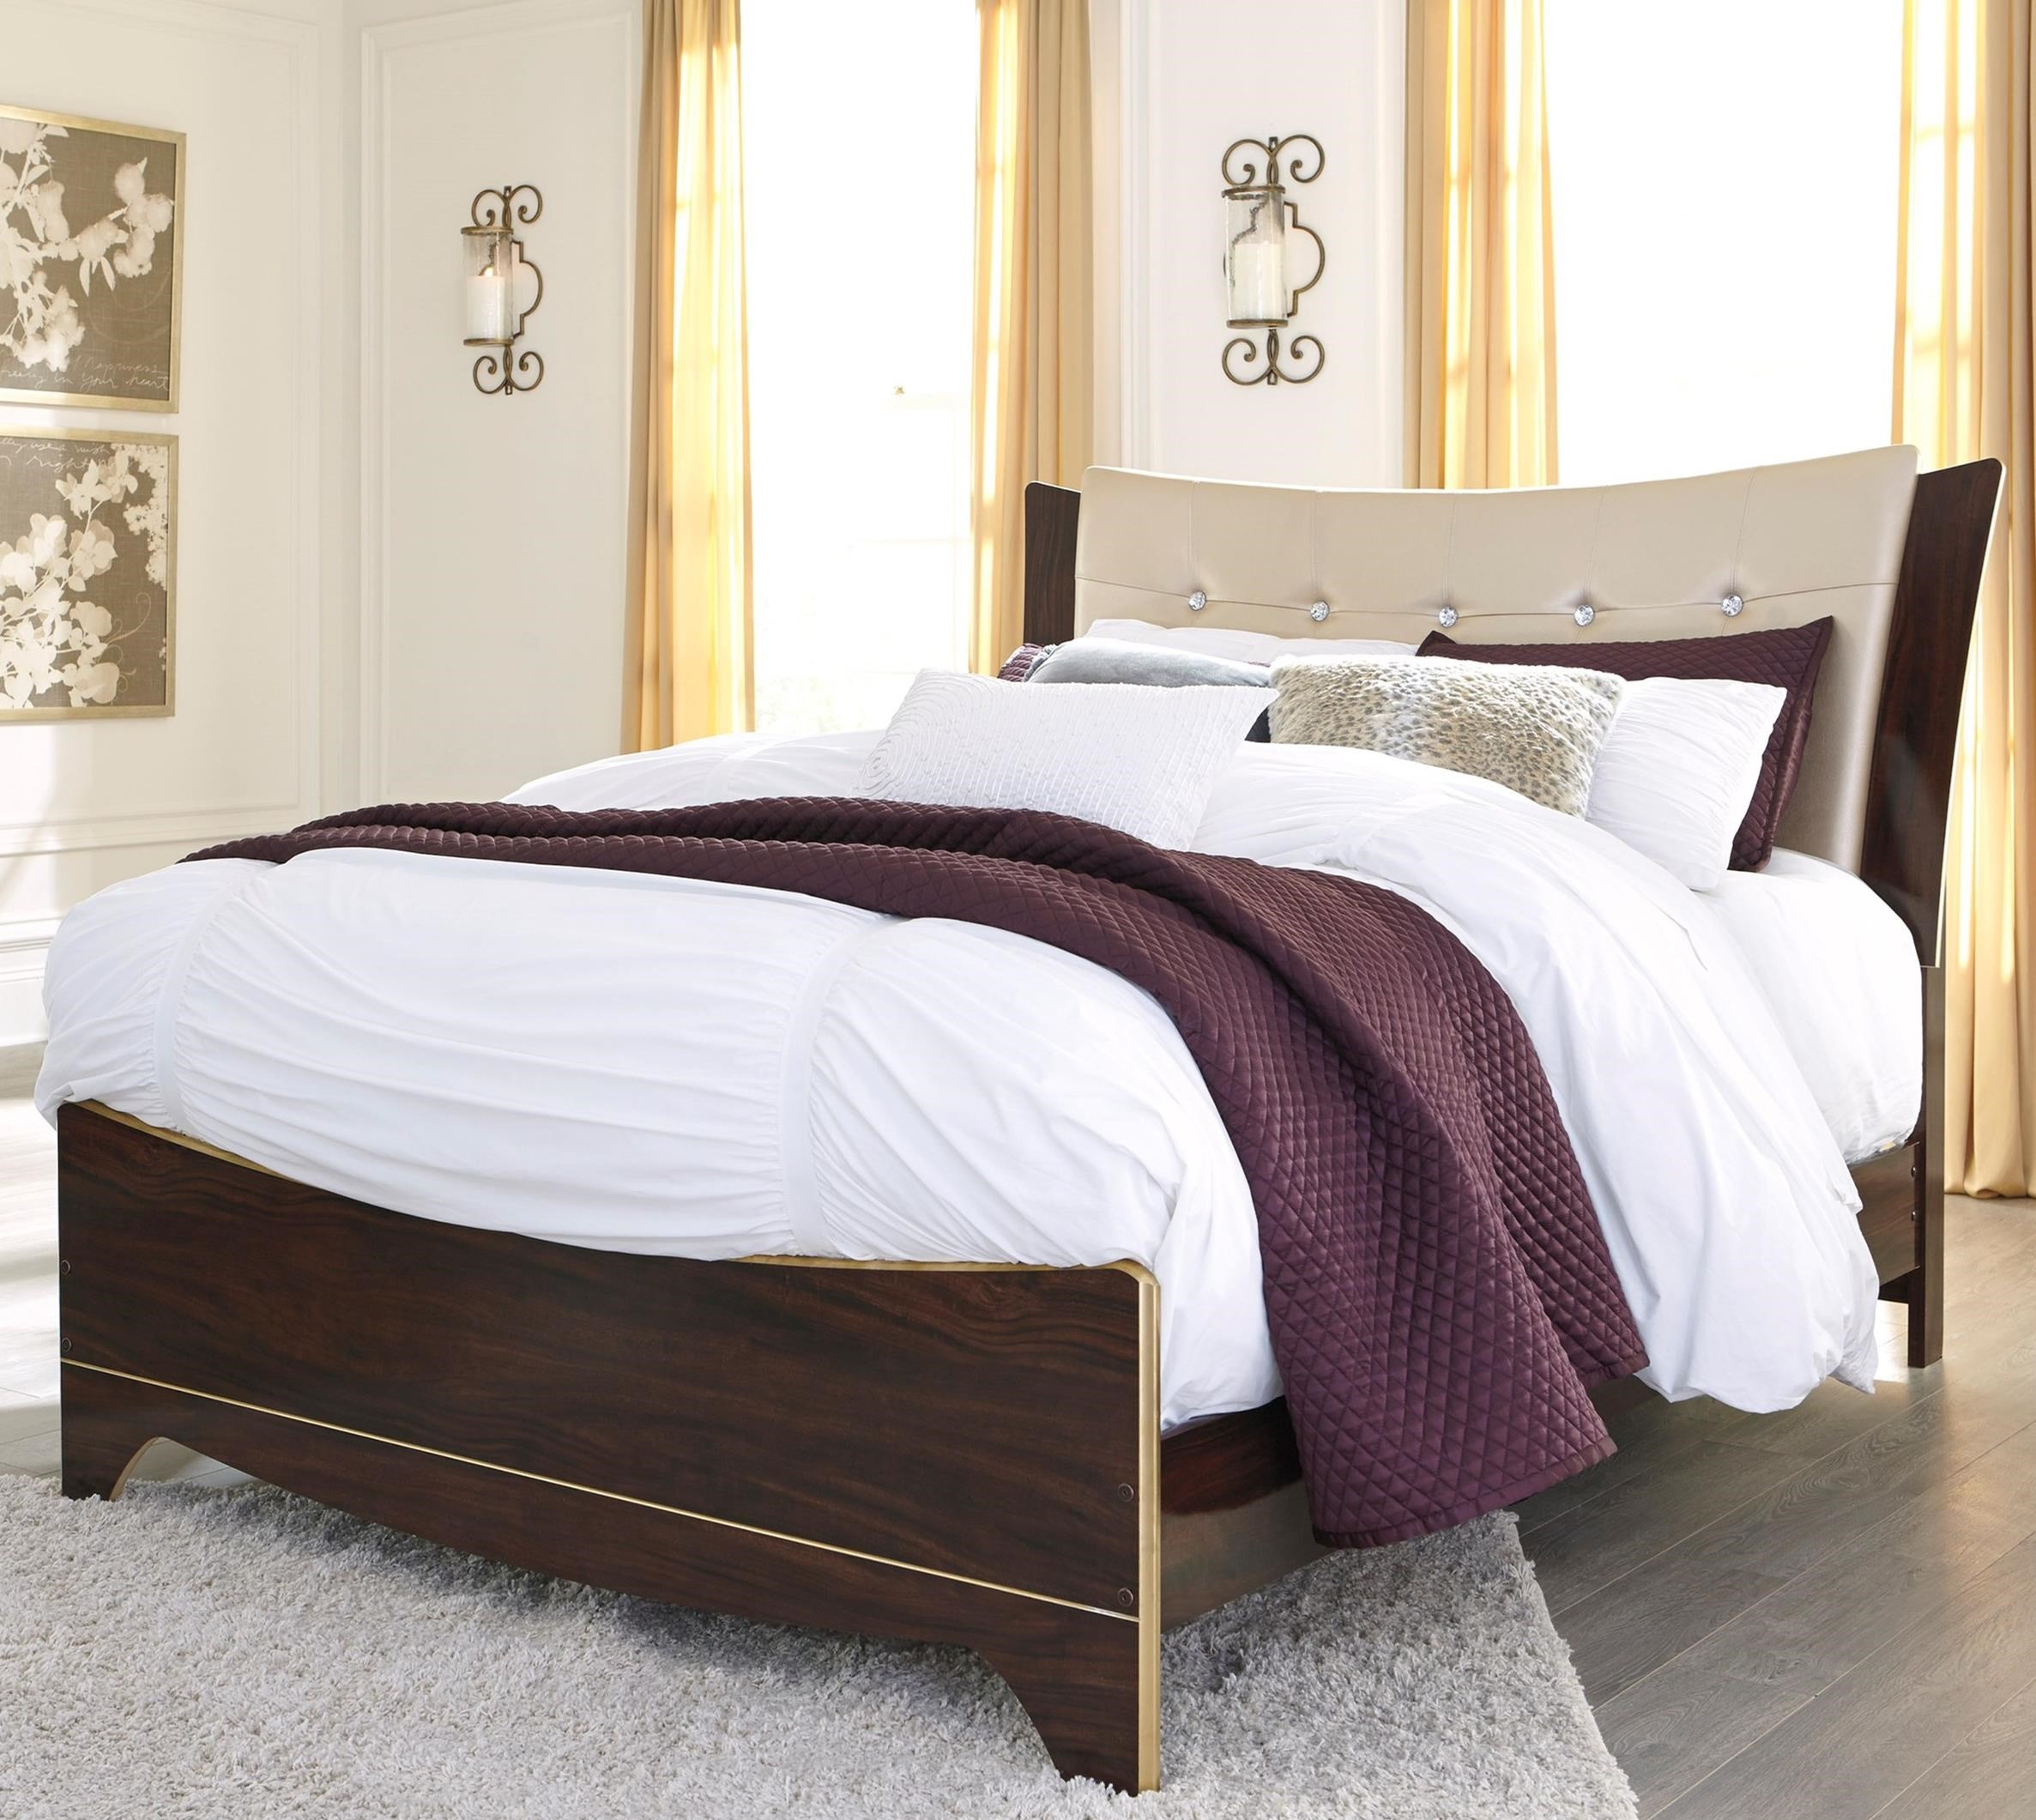 Signature Design by Ashley Lenmara Queen Upholstered Bed - Item Number: B247-57+54+96